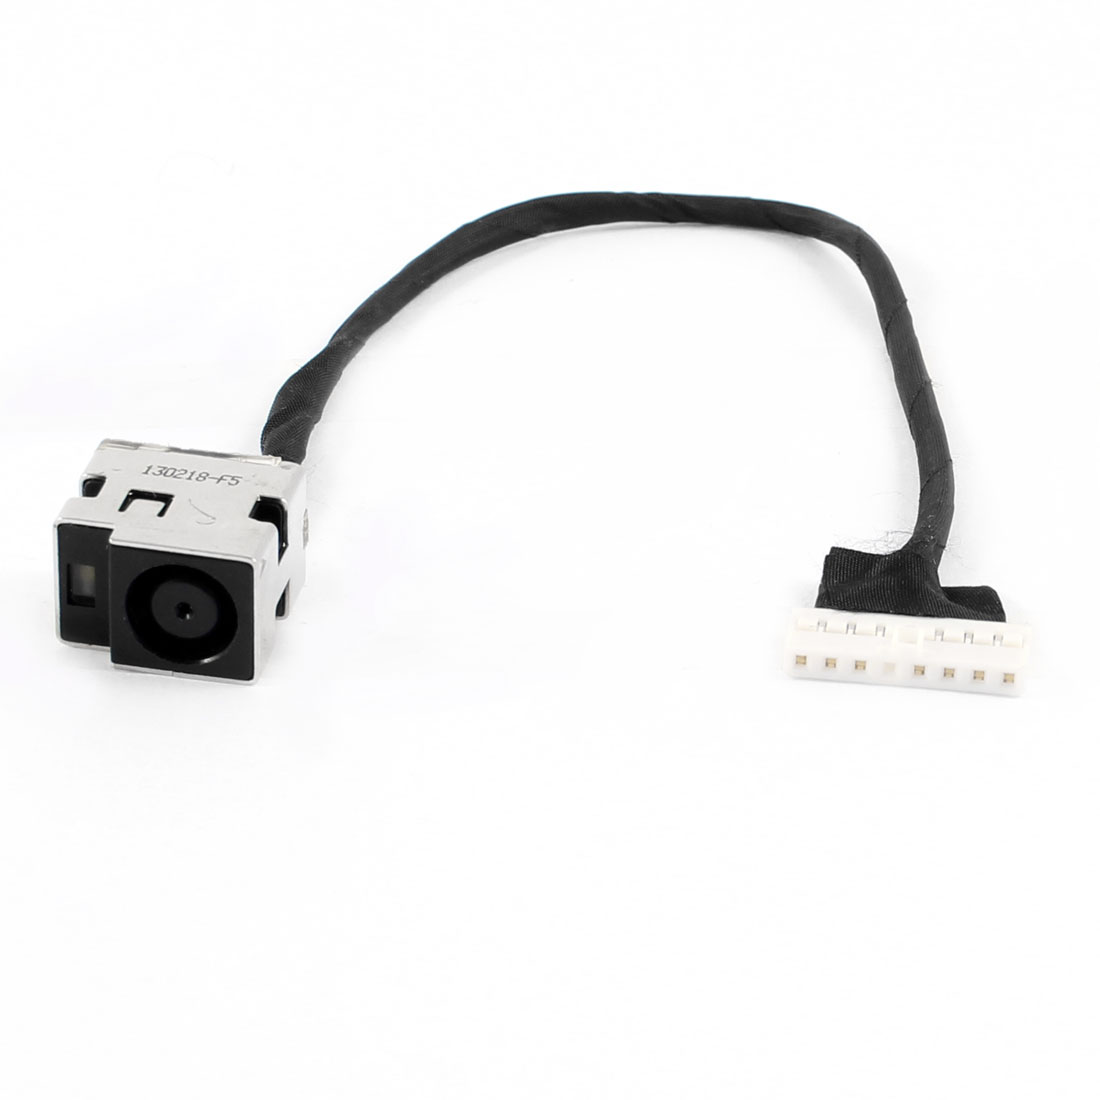 Laptop DC Power Jack Socket Cable Wire Harness PJ202 for HP Compaq CQ62